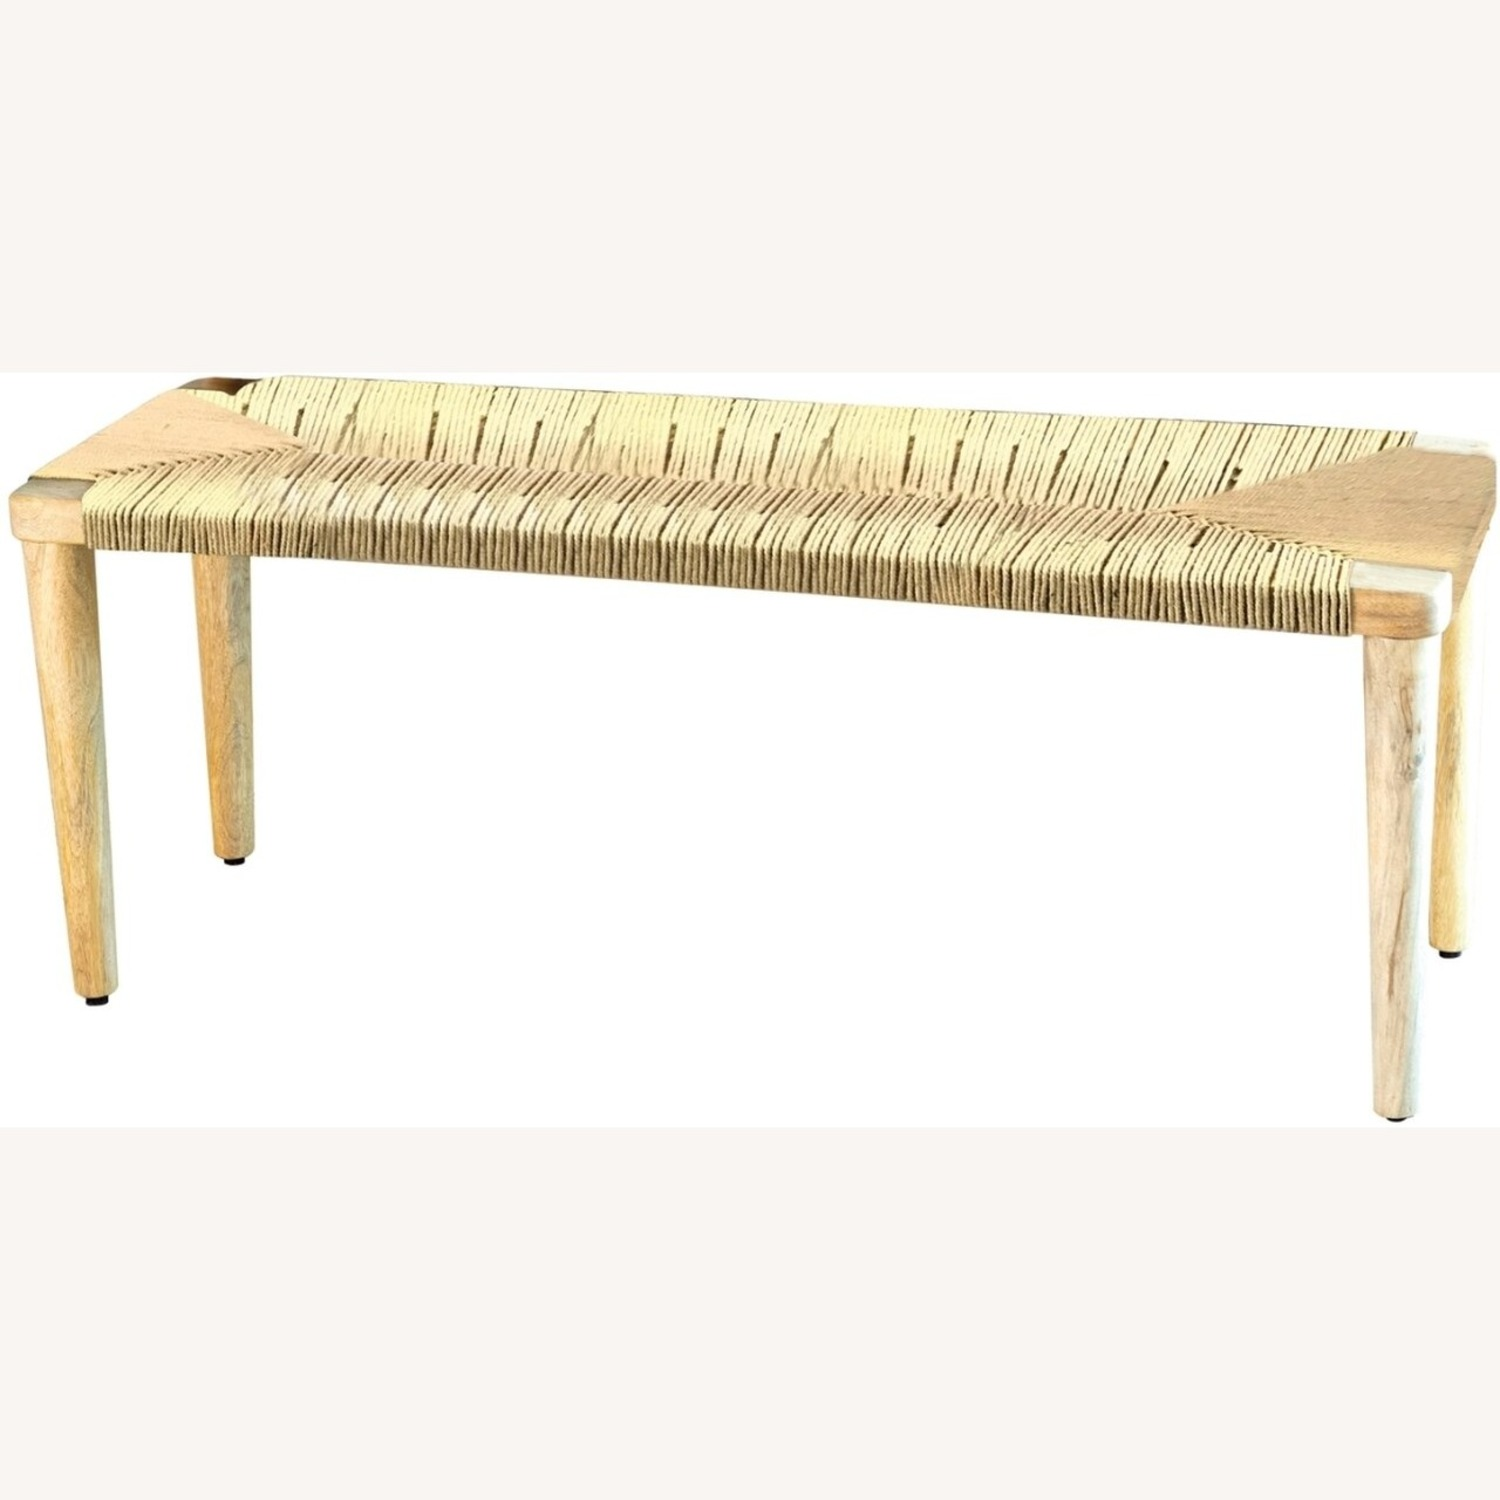 Classic Bench Made From Cotton Rope In Hazelnut - image-1